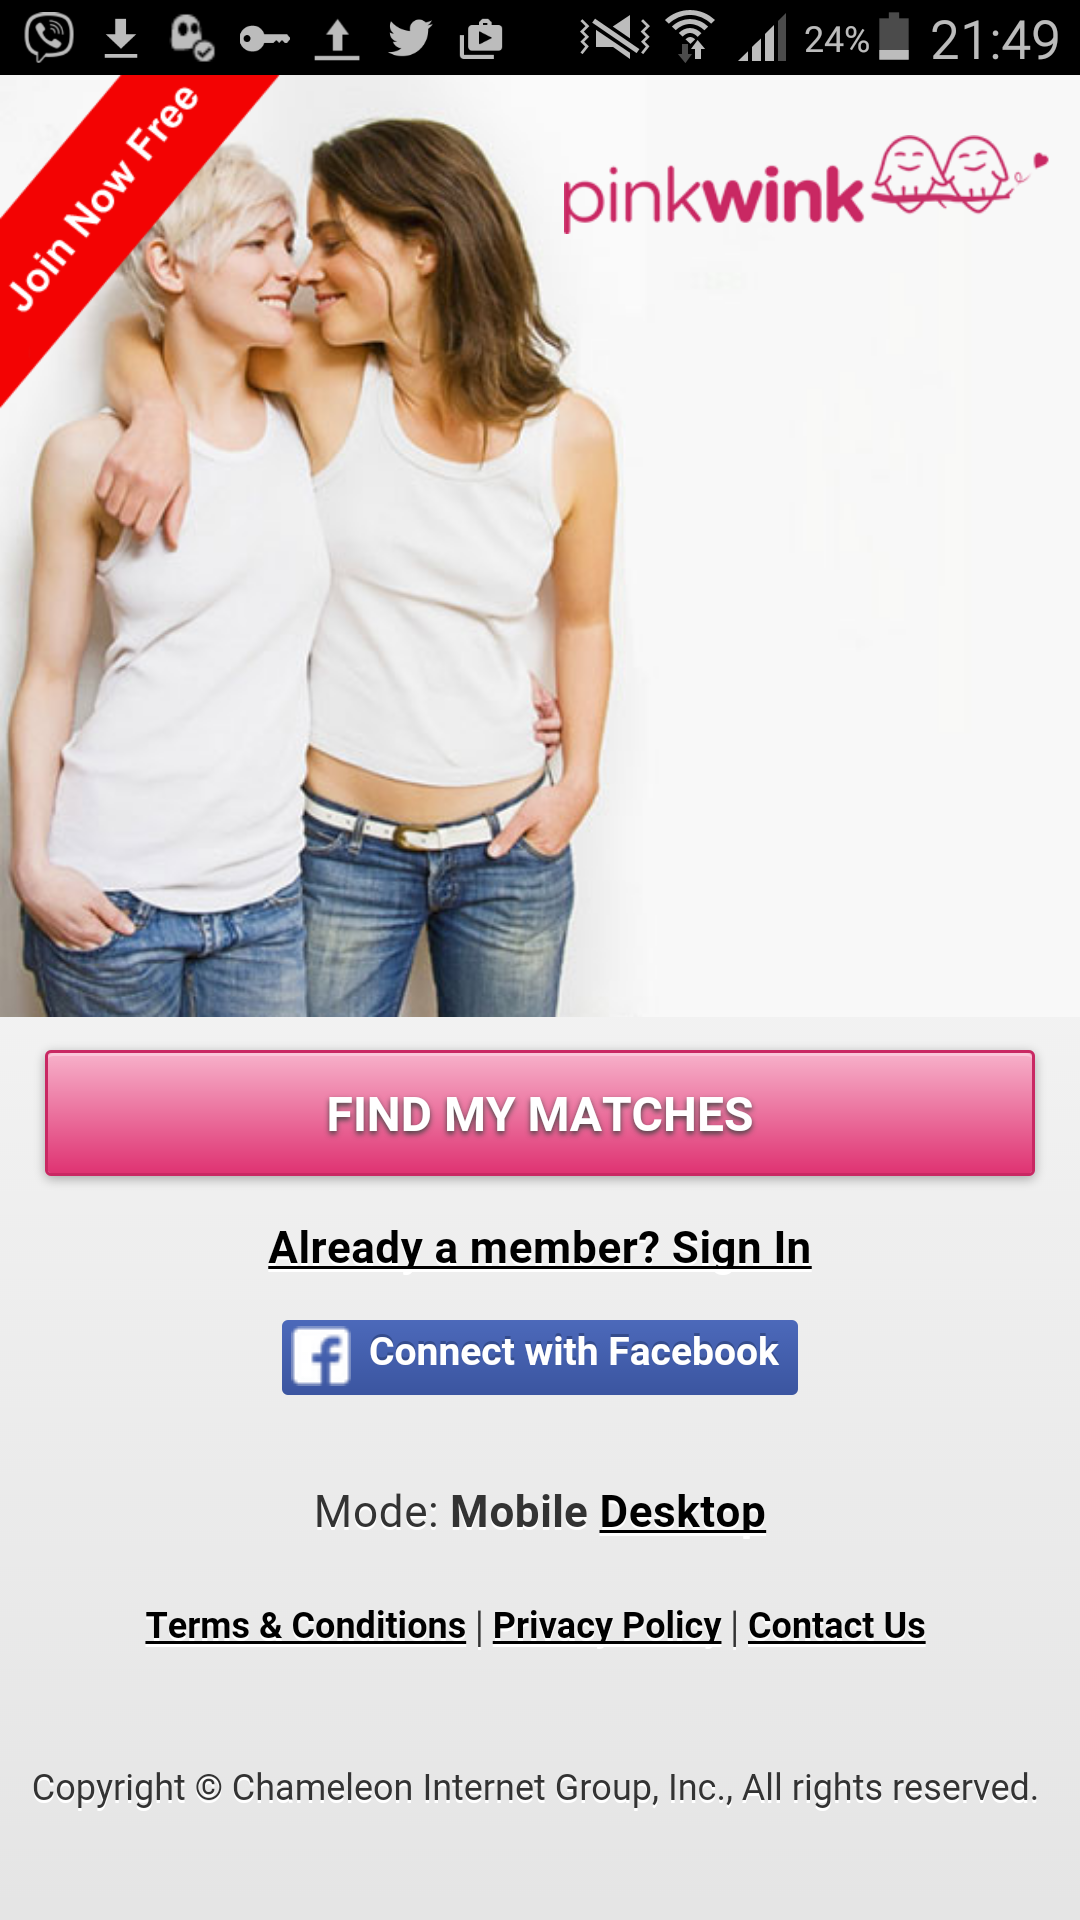 duolun lesbian dating site Choosing the right lesbian dating site can be the difference between going on lots of dates or throwing your money away here's the best way to choose a lesbian dating site: focus on the dating site with the most members.